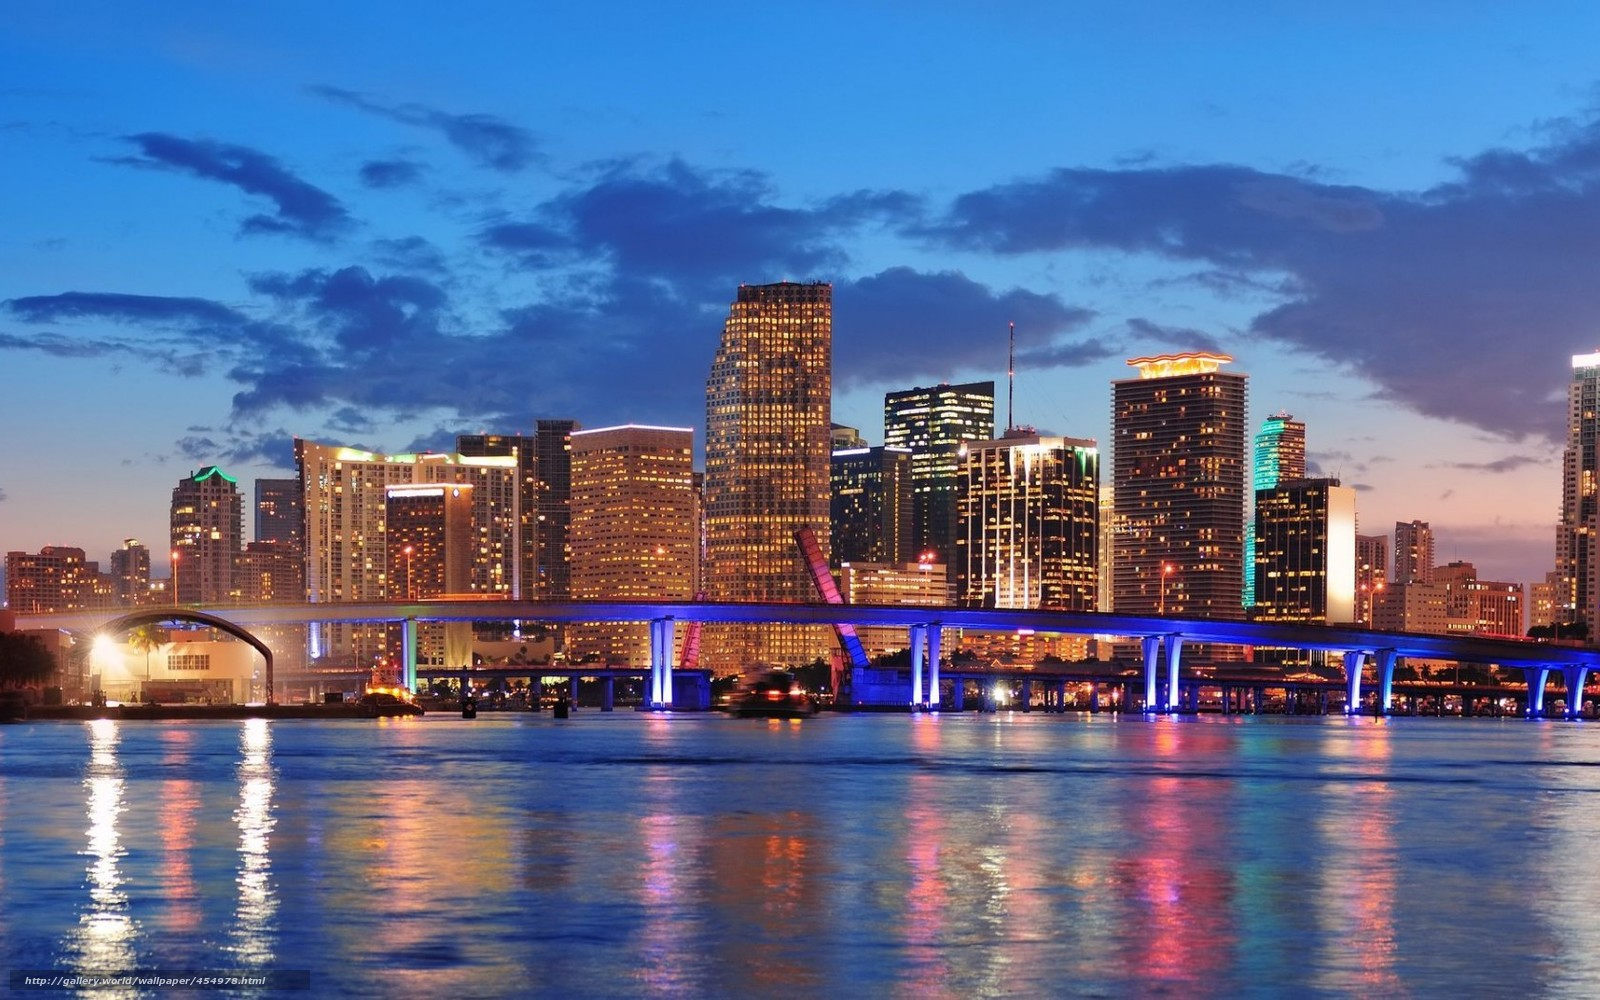 Download wallpaper USA Florida Miami city desktop wallpaper in 1600x1000